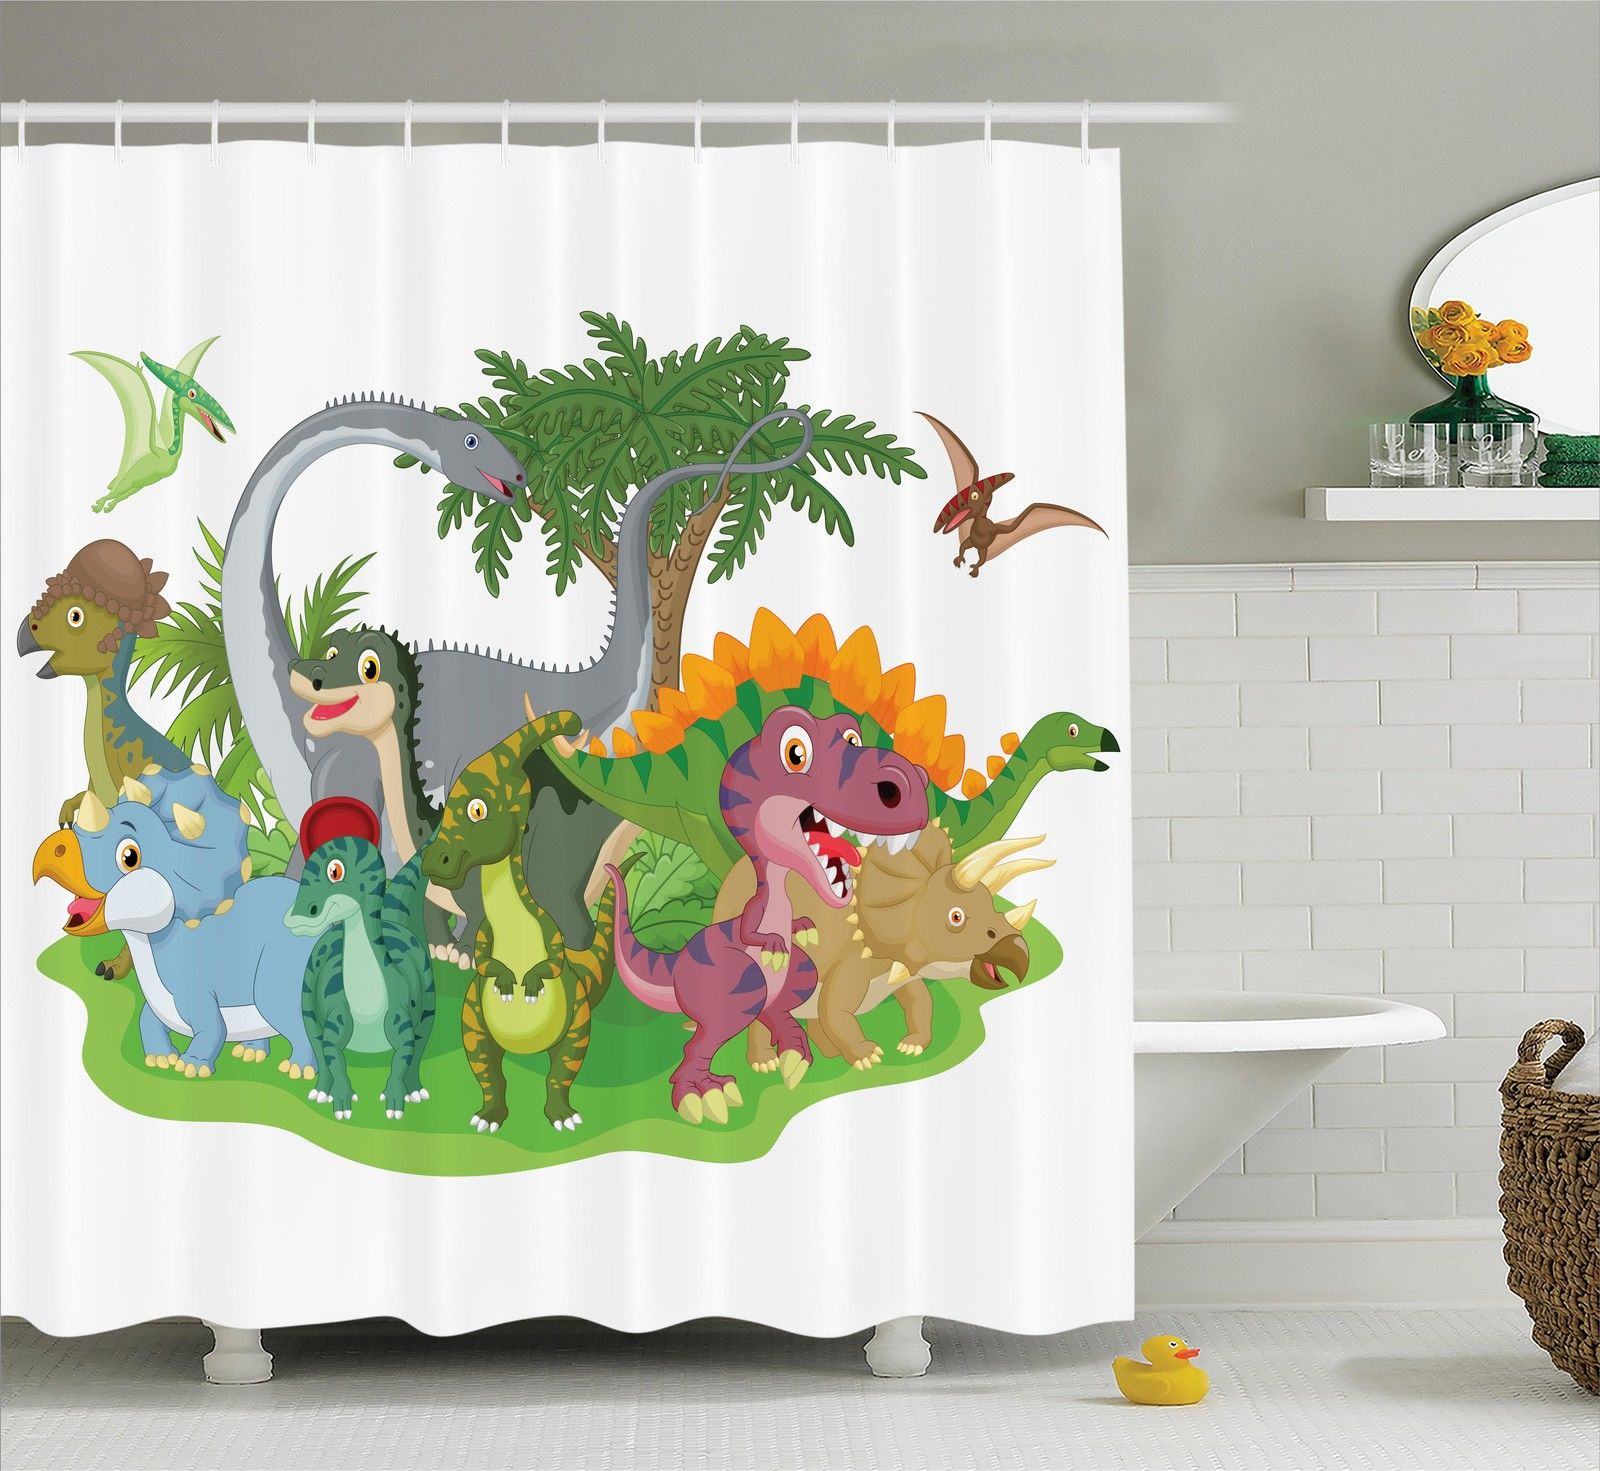 Cartoon of Dinosaurs Print Home Decor Dinos T-rex Kids Image Shower Curtain Set